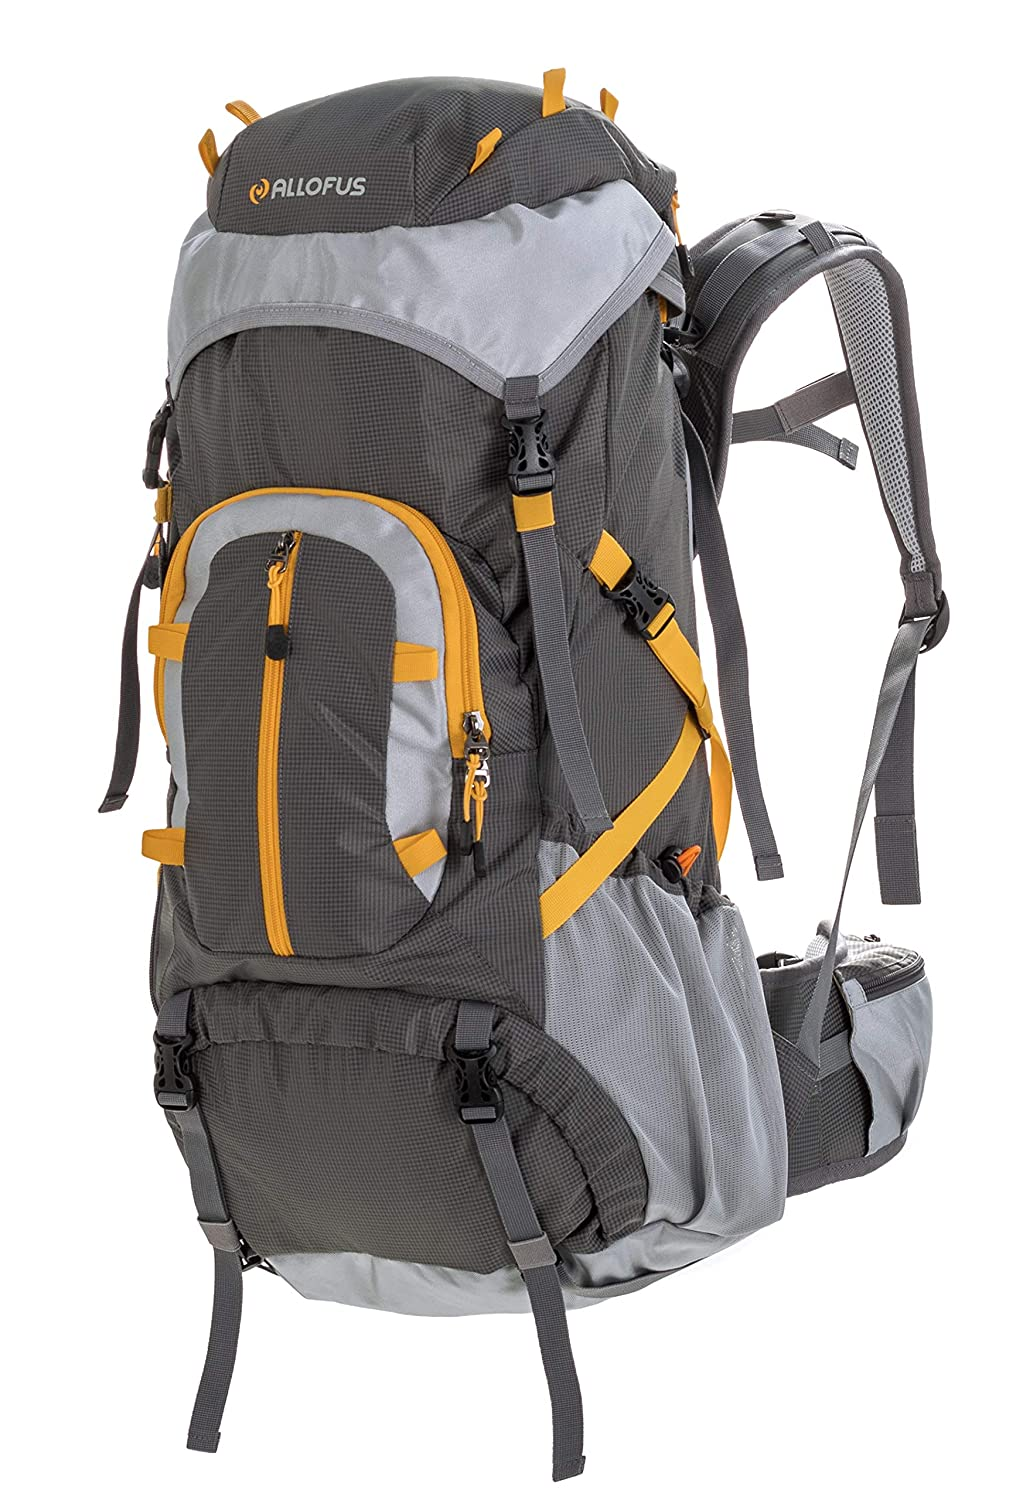 All of Us 45 Liter Unisex Internal Frame Hiking and Travel Backpack for Youth and Adults with Waterproof Cover – Grey Yellow